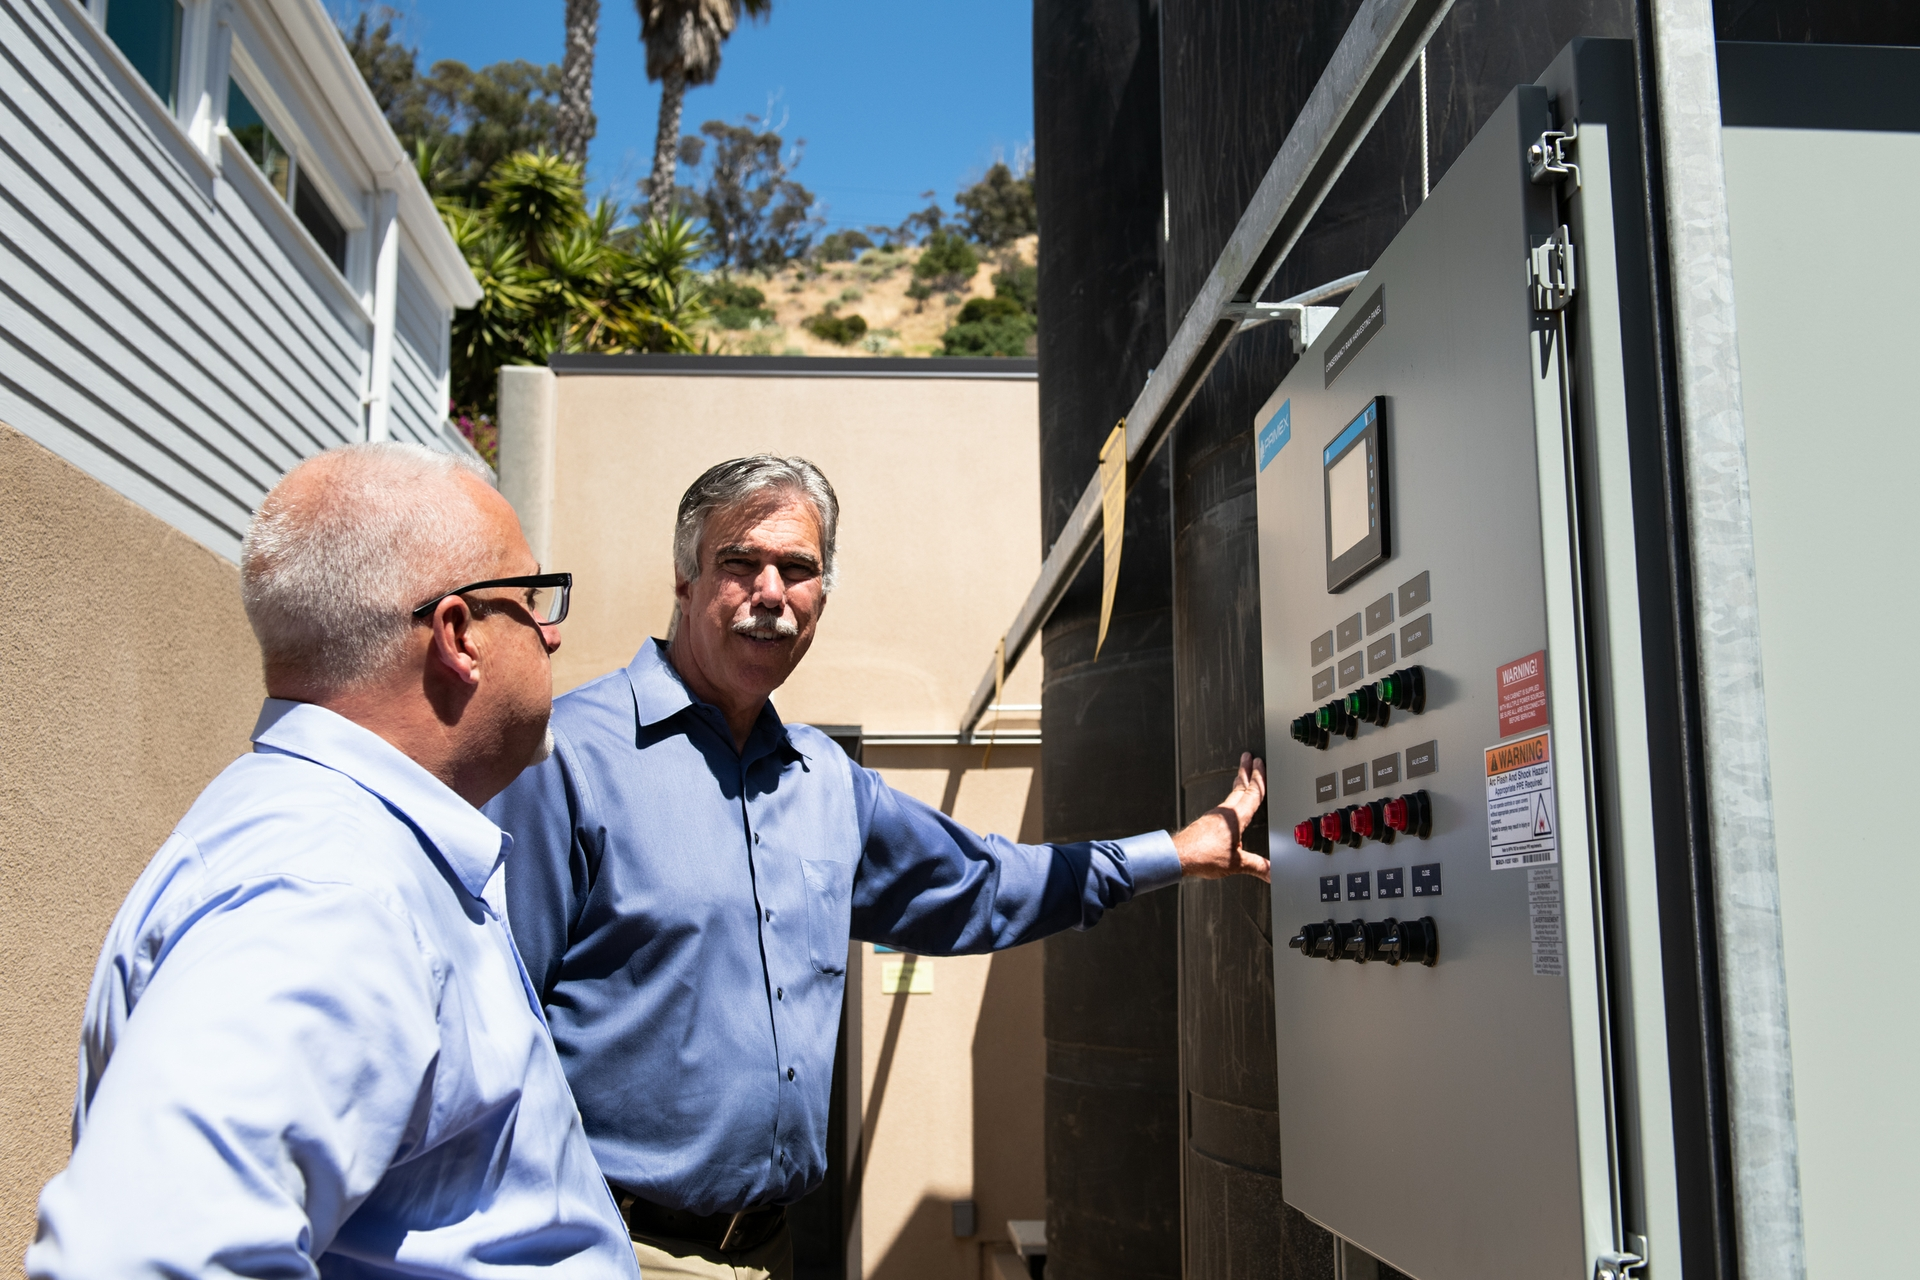 Ron Hite, SCE's island manager, and Tony Budrovich discuss the building's salt water desalination system.